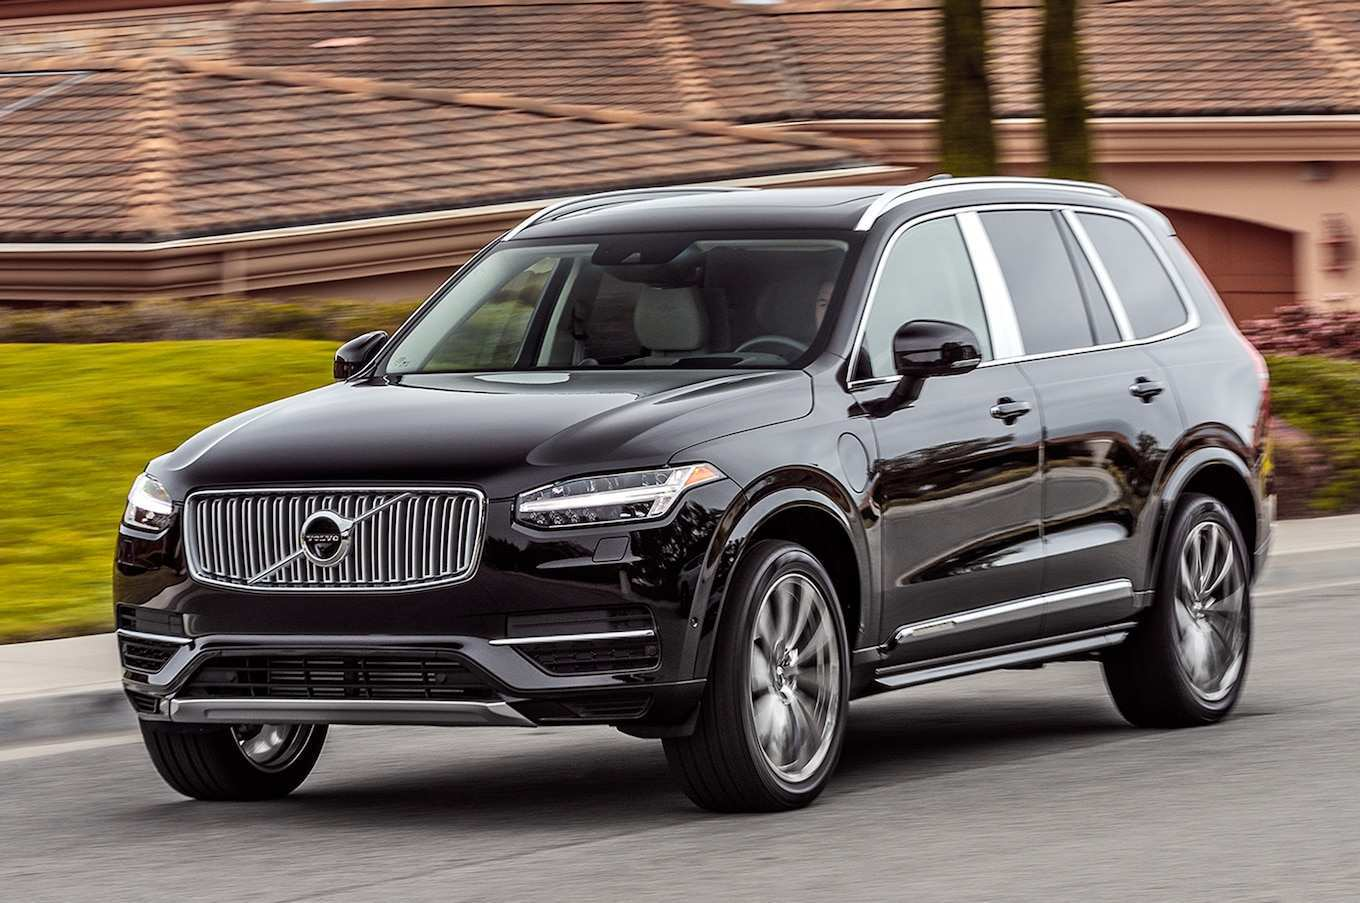 volvo xc90 2020 changes - car review : car review